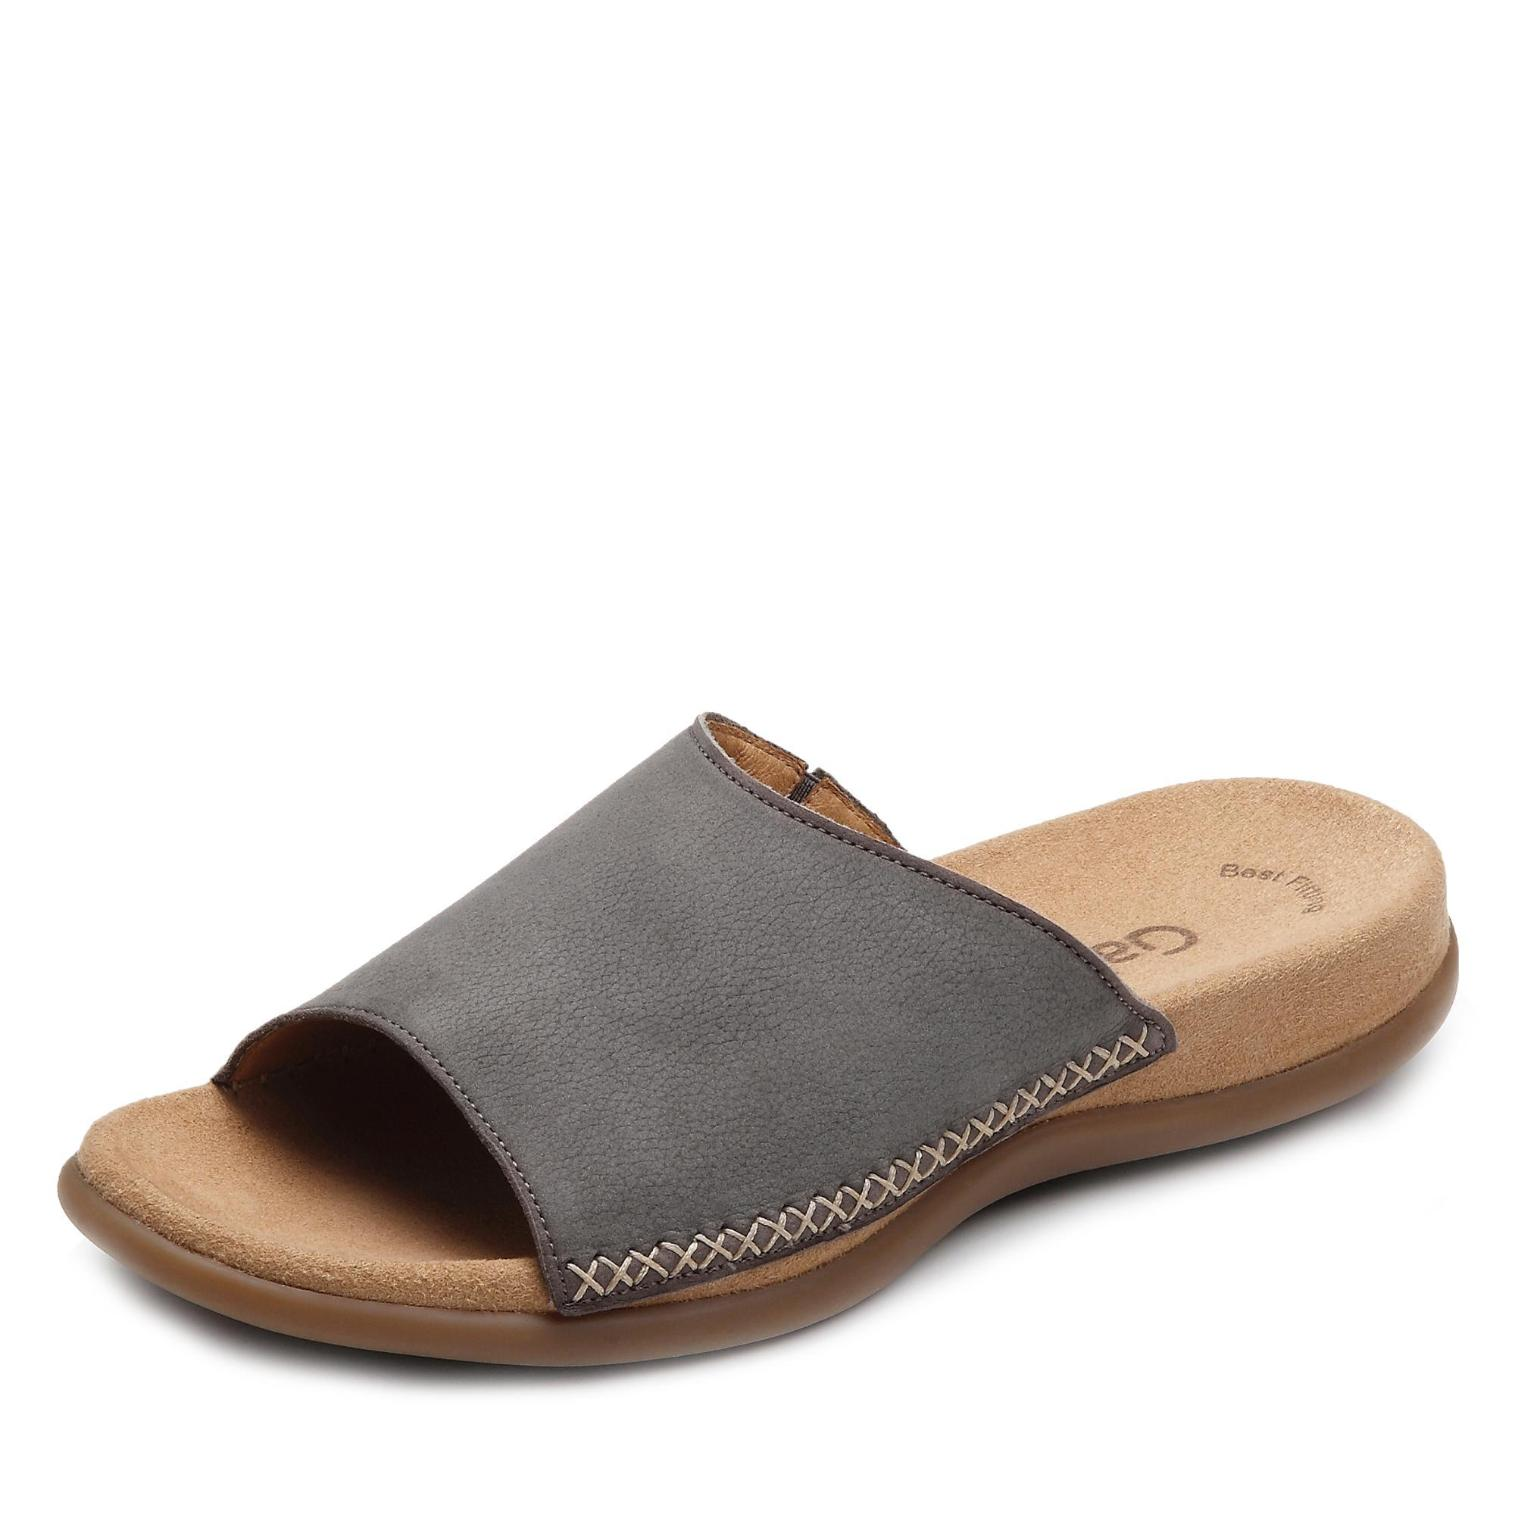 latest discount new products to buy Gabor Pantolette in Farbe taupe um 31% reduziert online kaufen